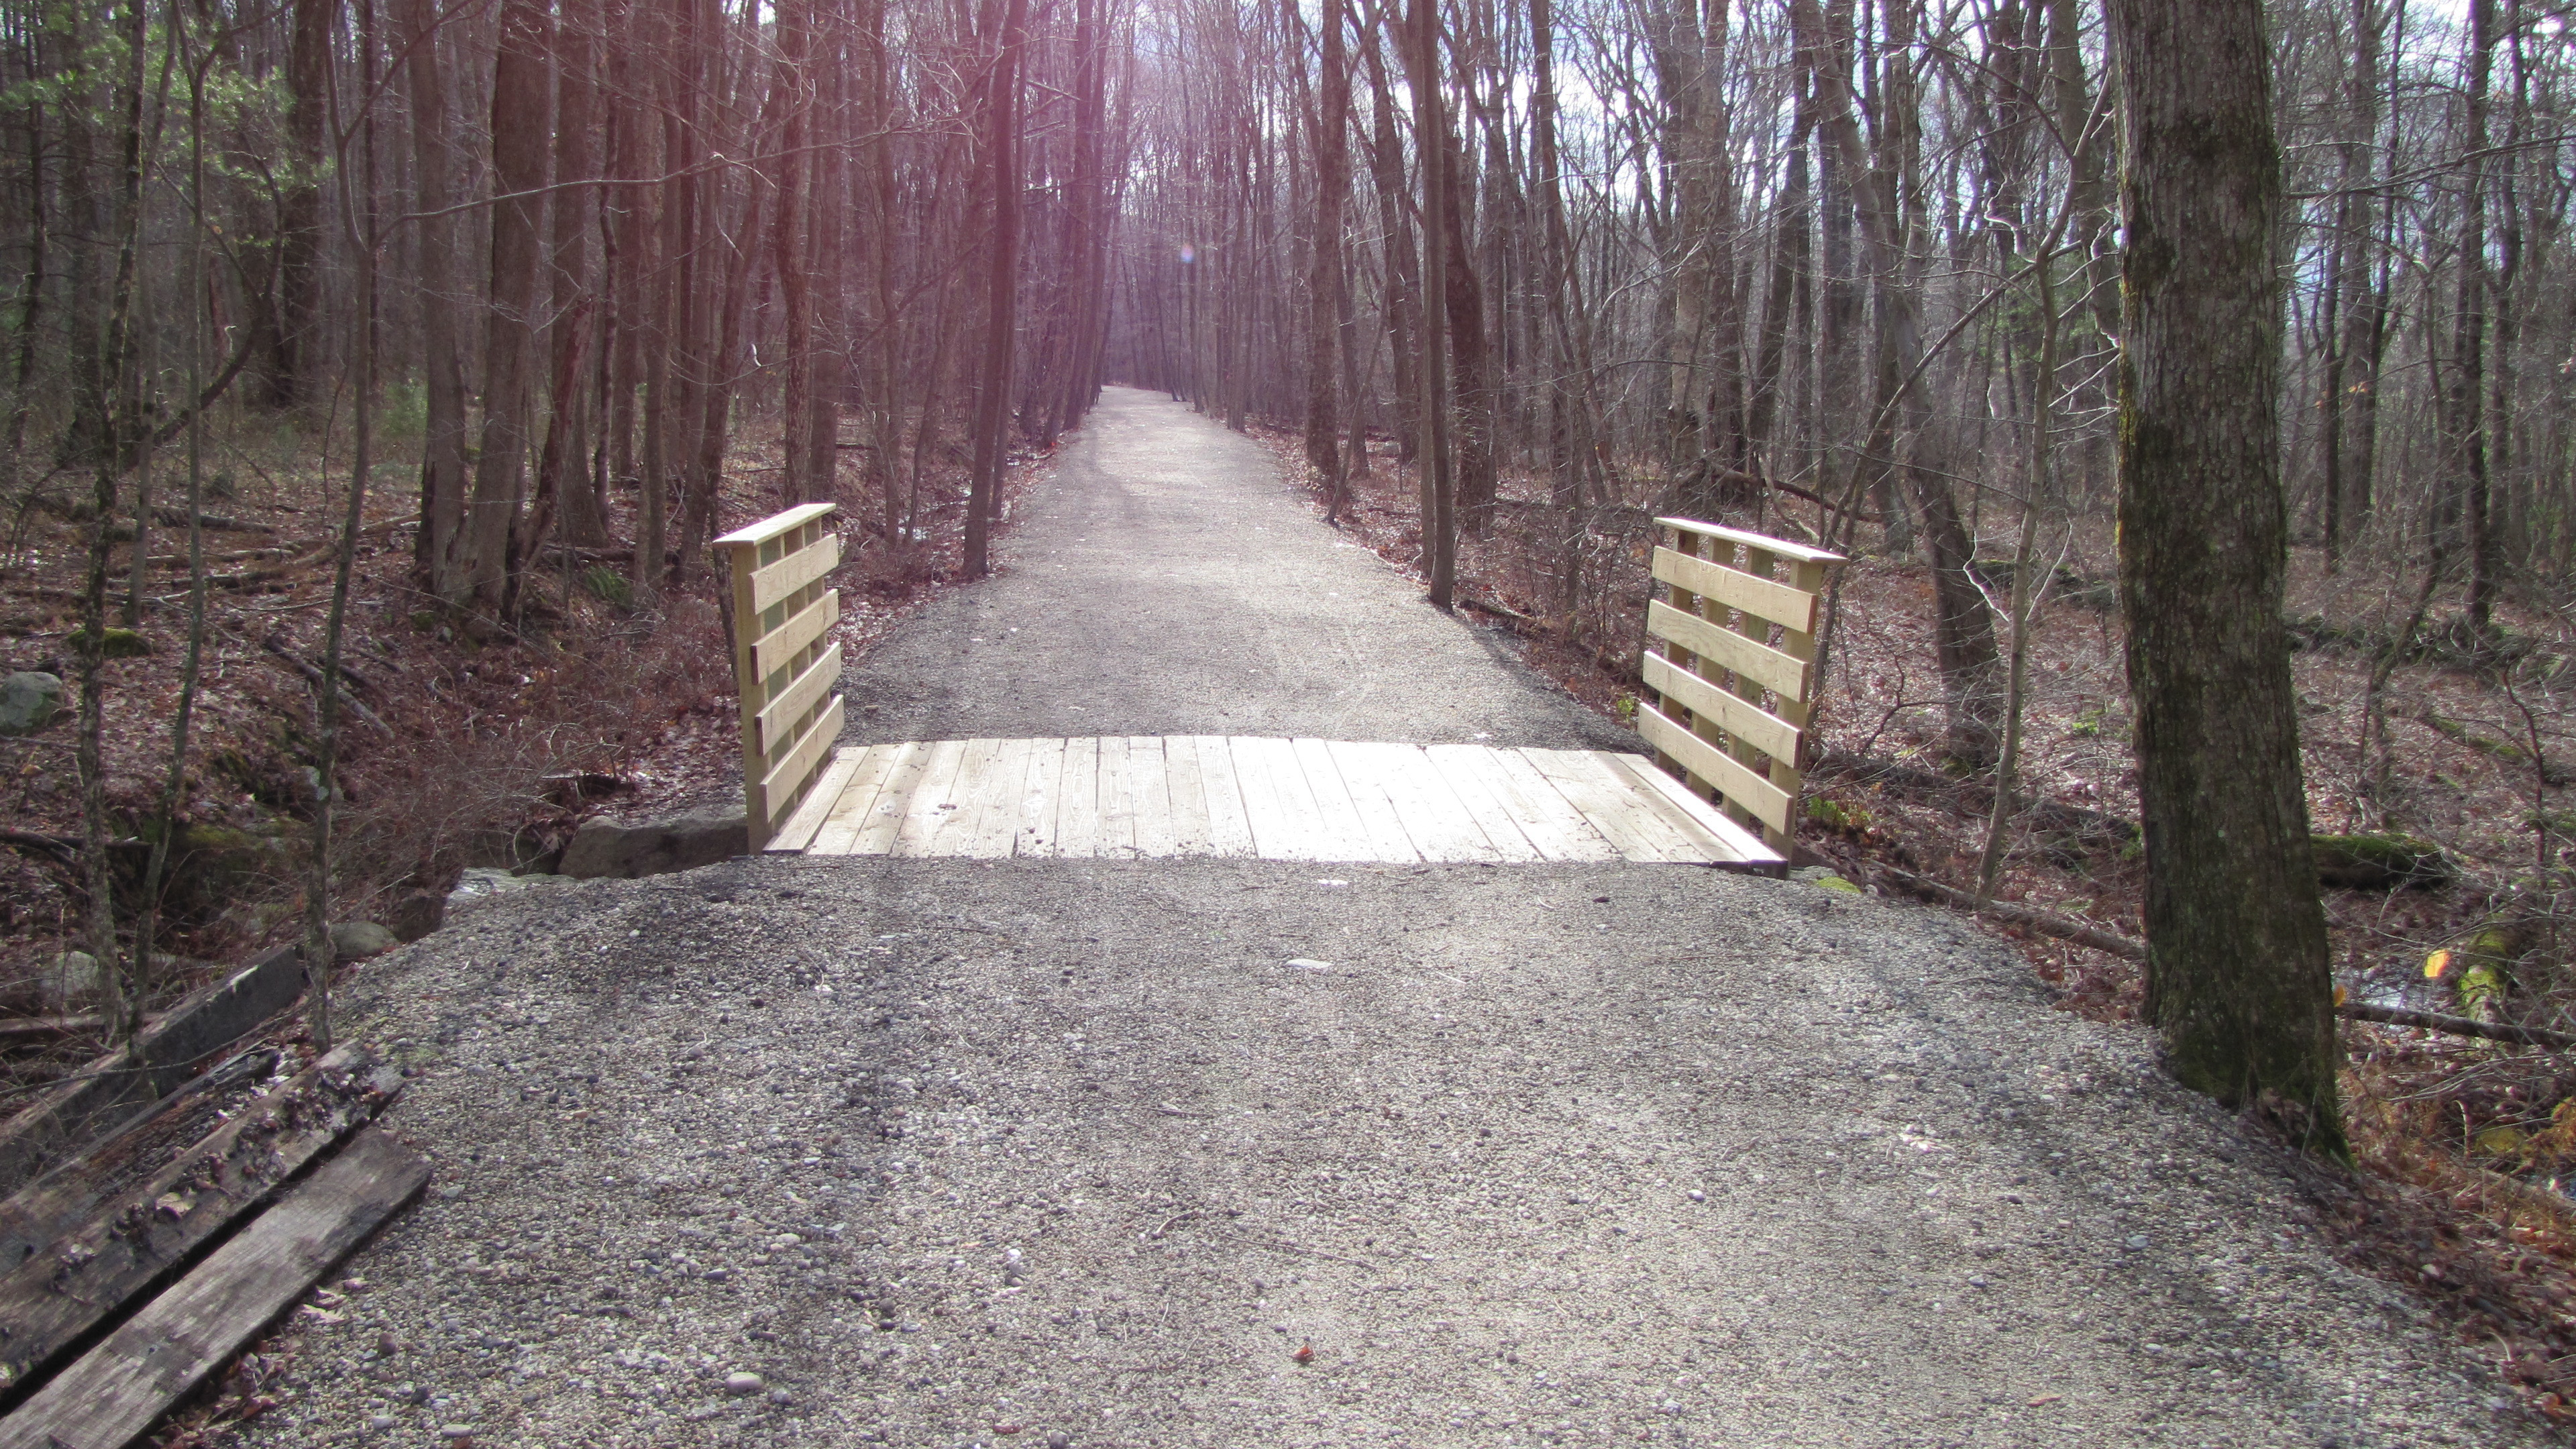 Culvert Bridge on Center Trail